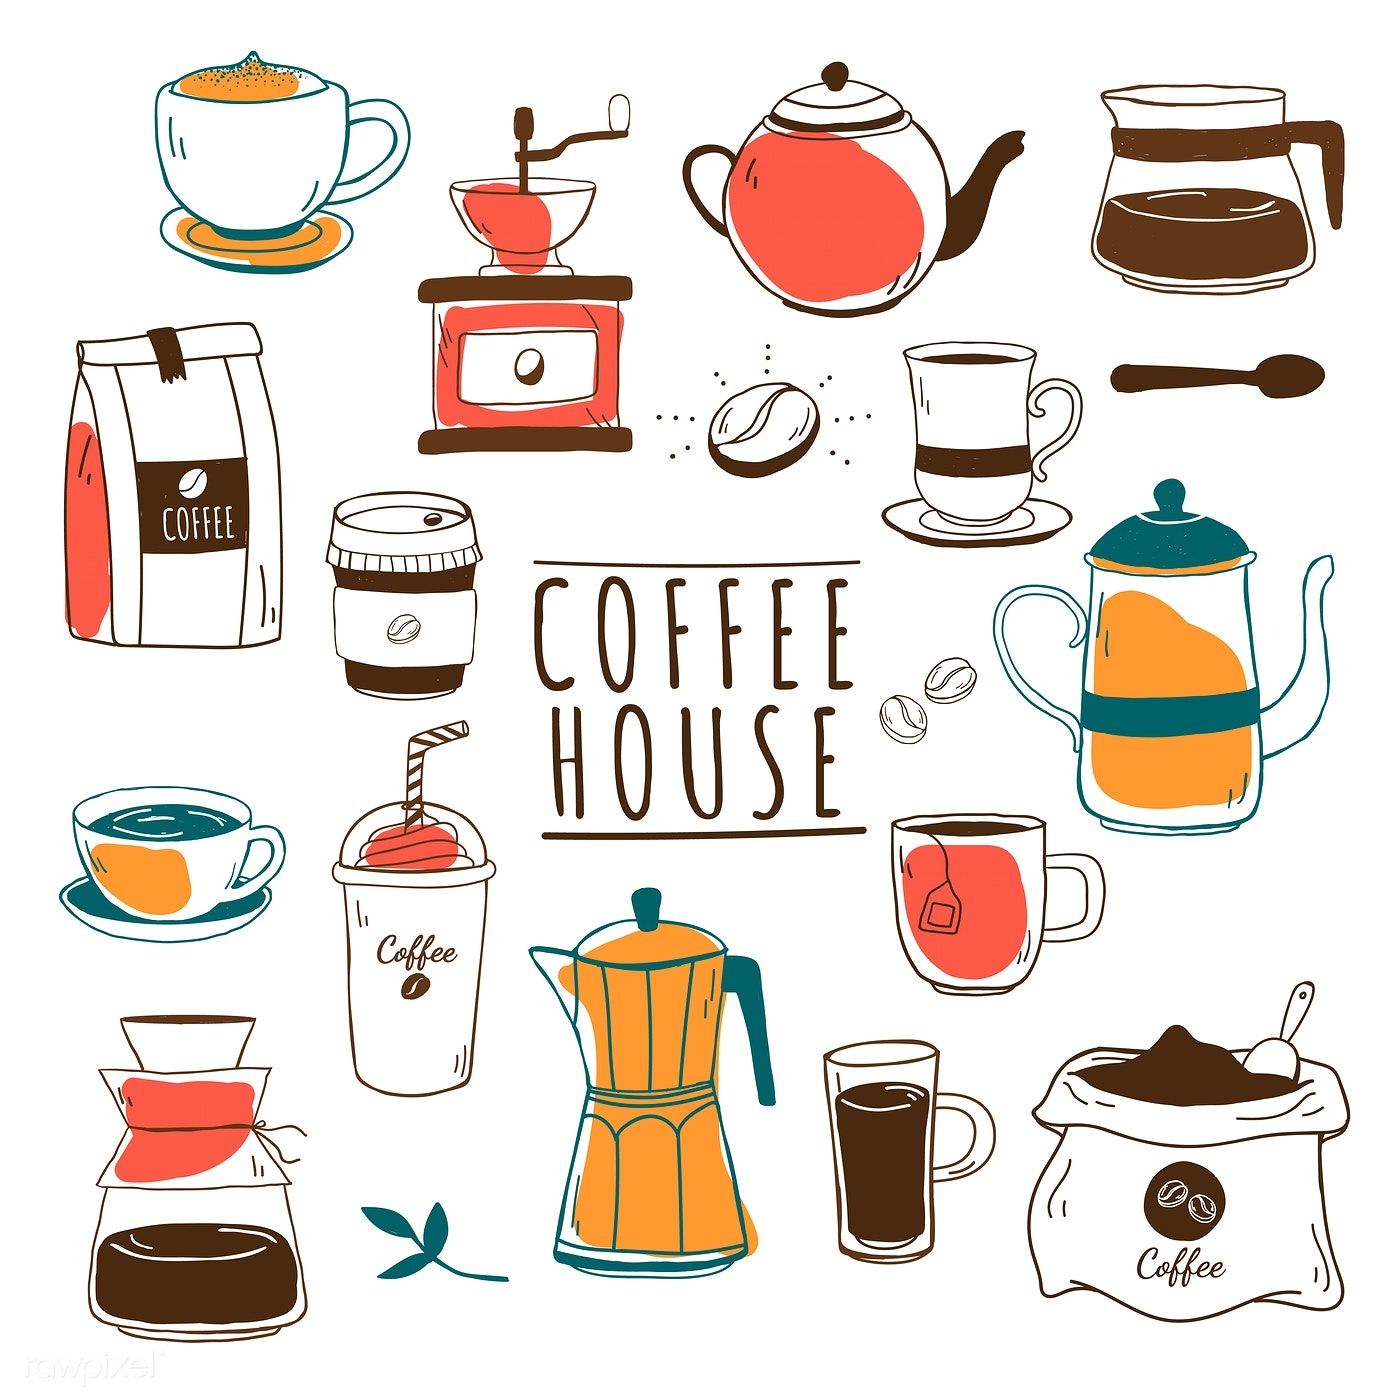 Cafe and coffee house pattern vector free image by